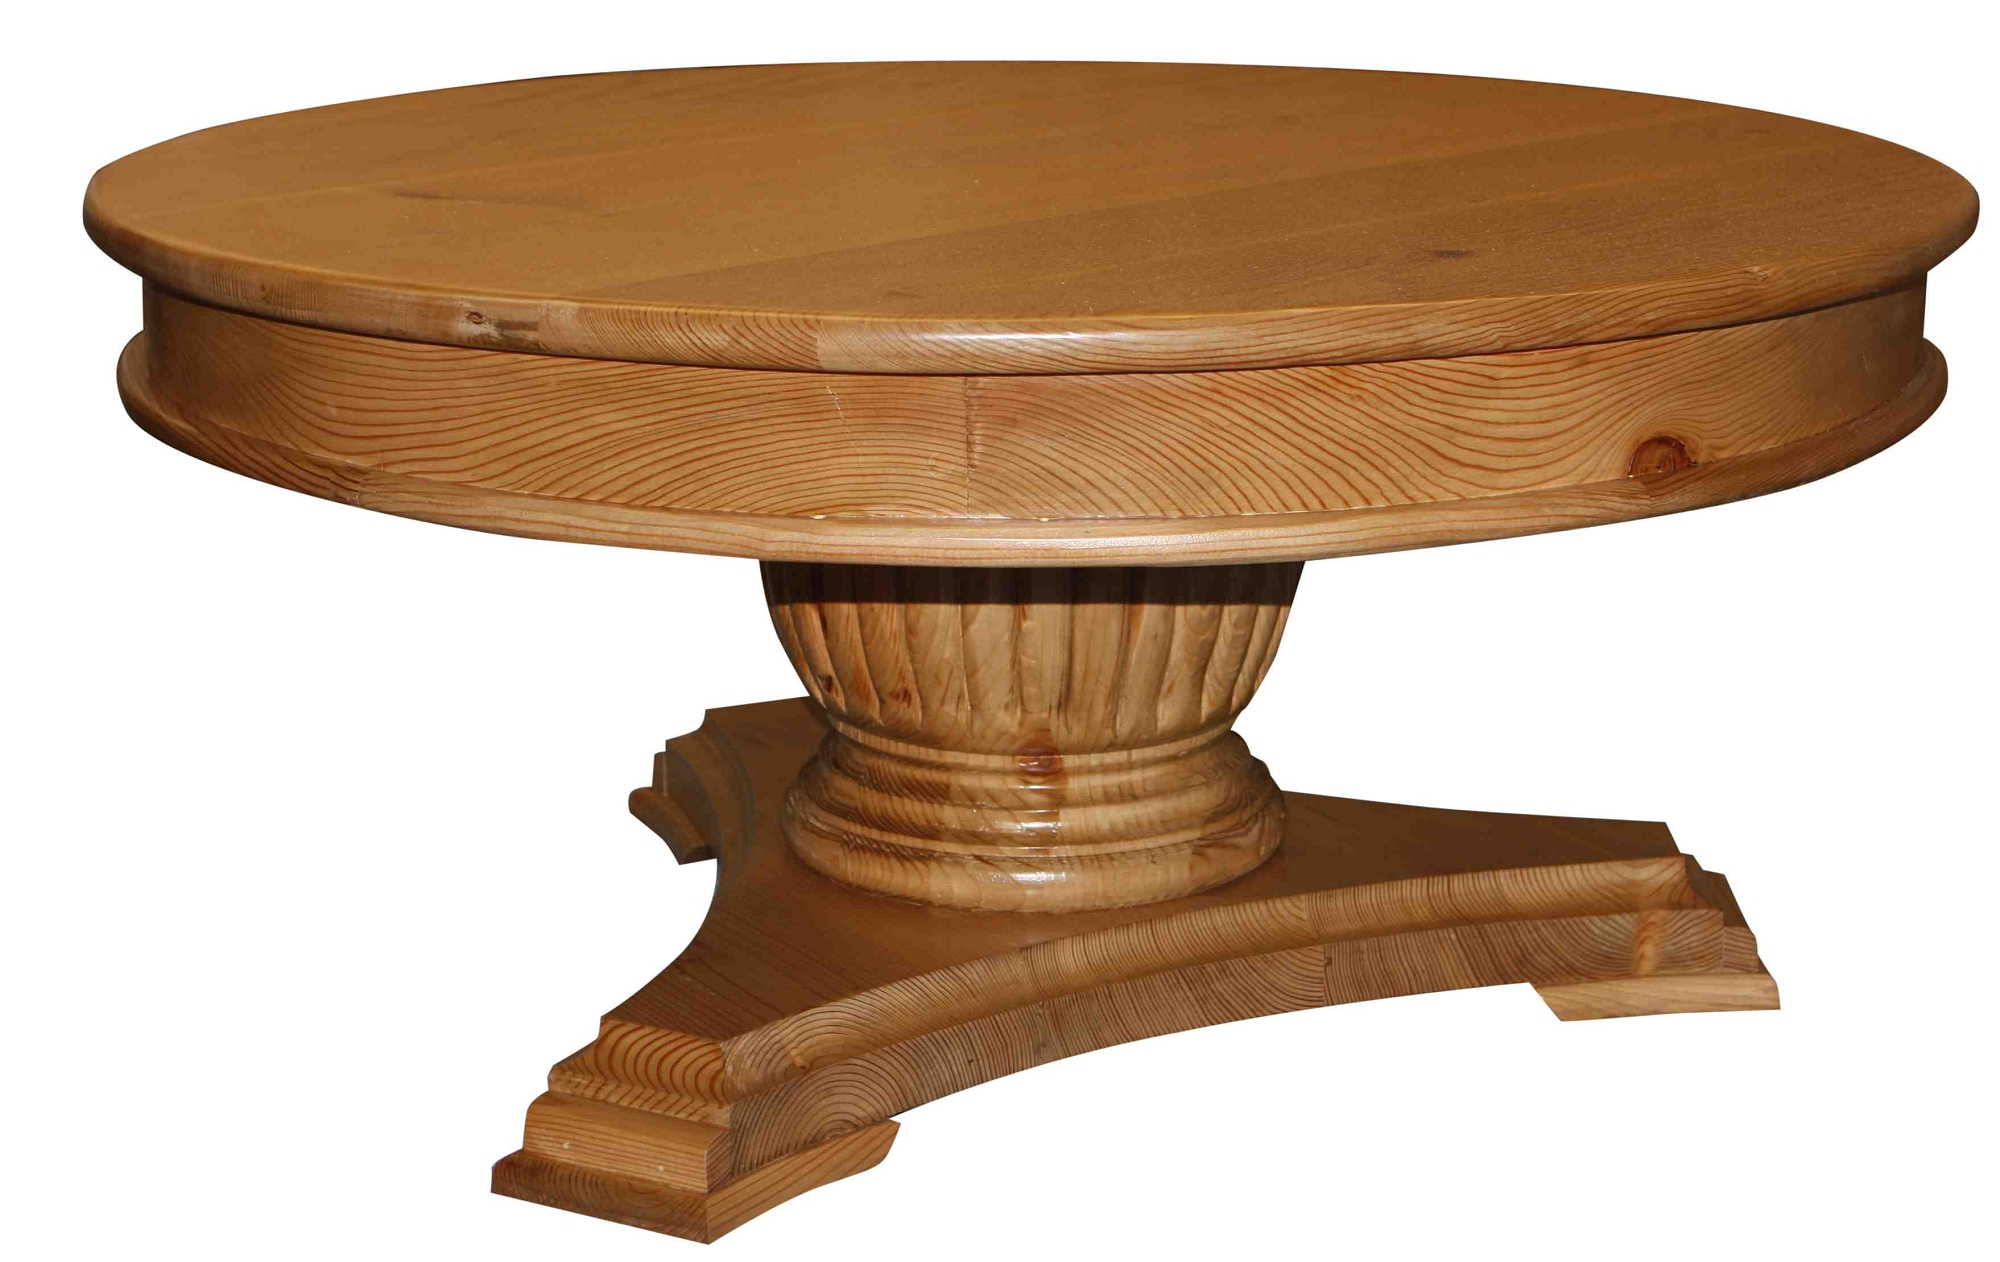 astounding accent wood small pedestal large unfinished end tables round diy tall black oak table licious bedside antique full size extra outdoor furniture covers unique umbrellas